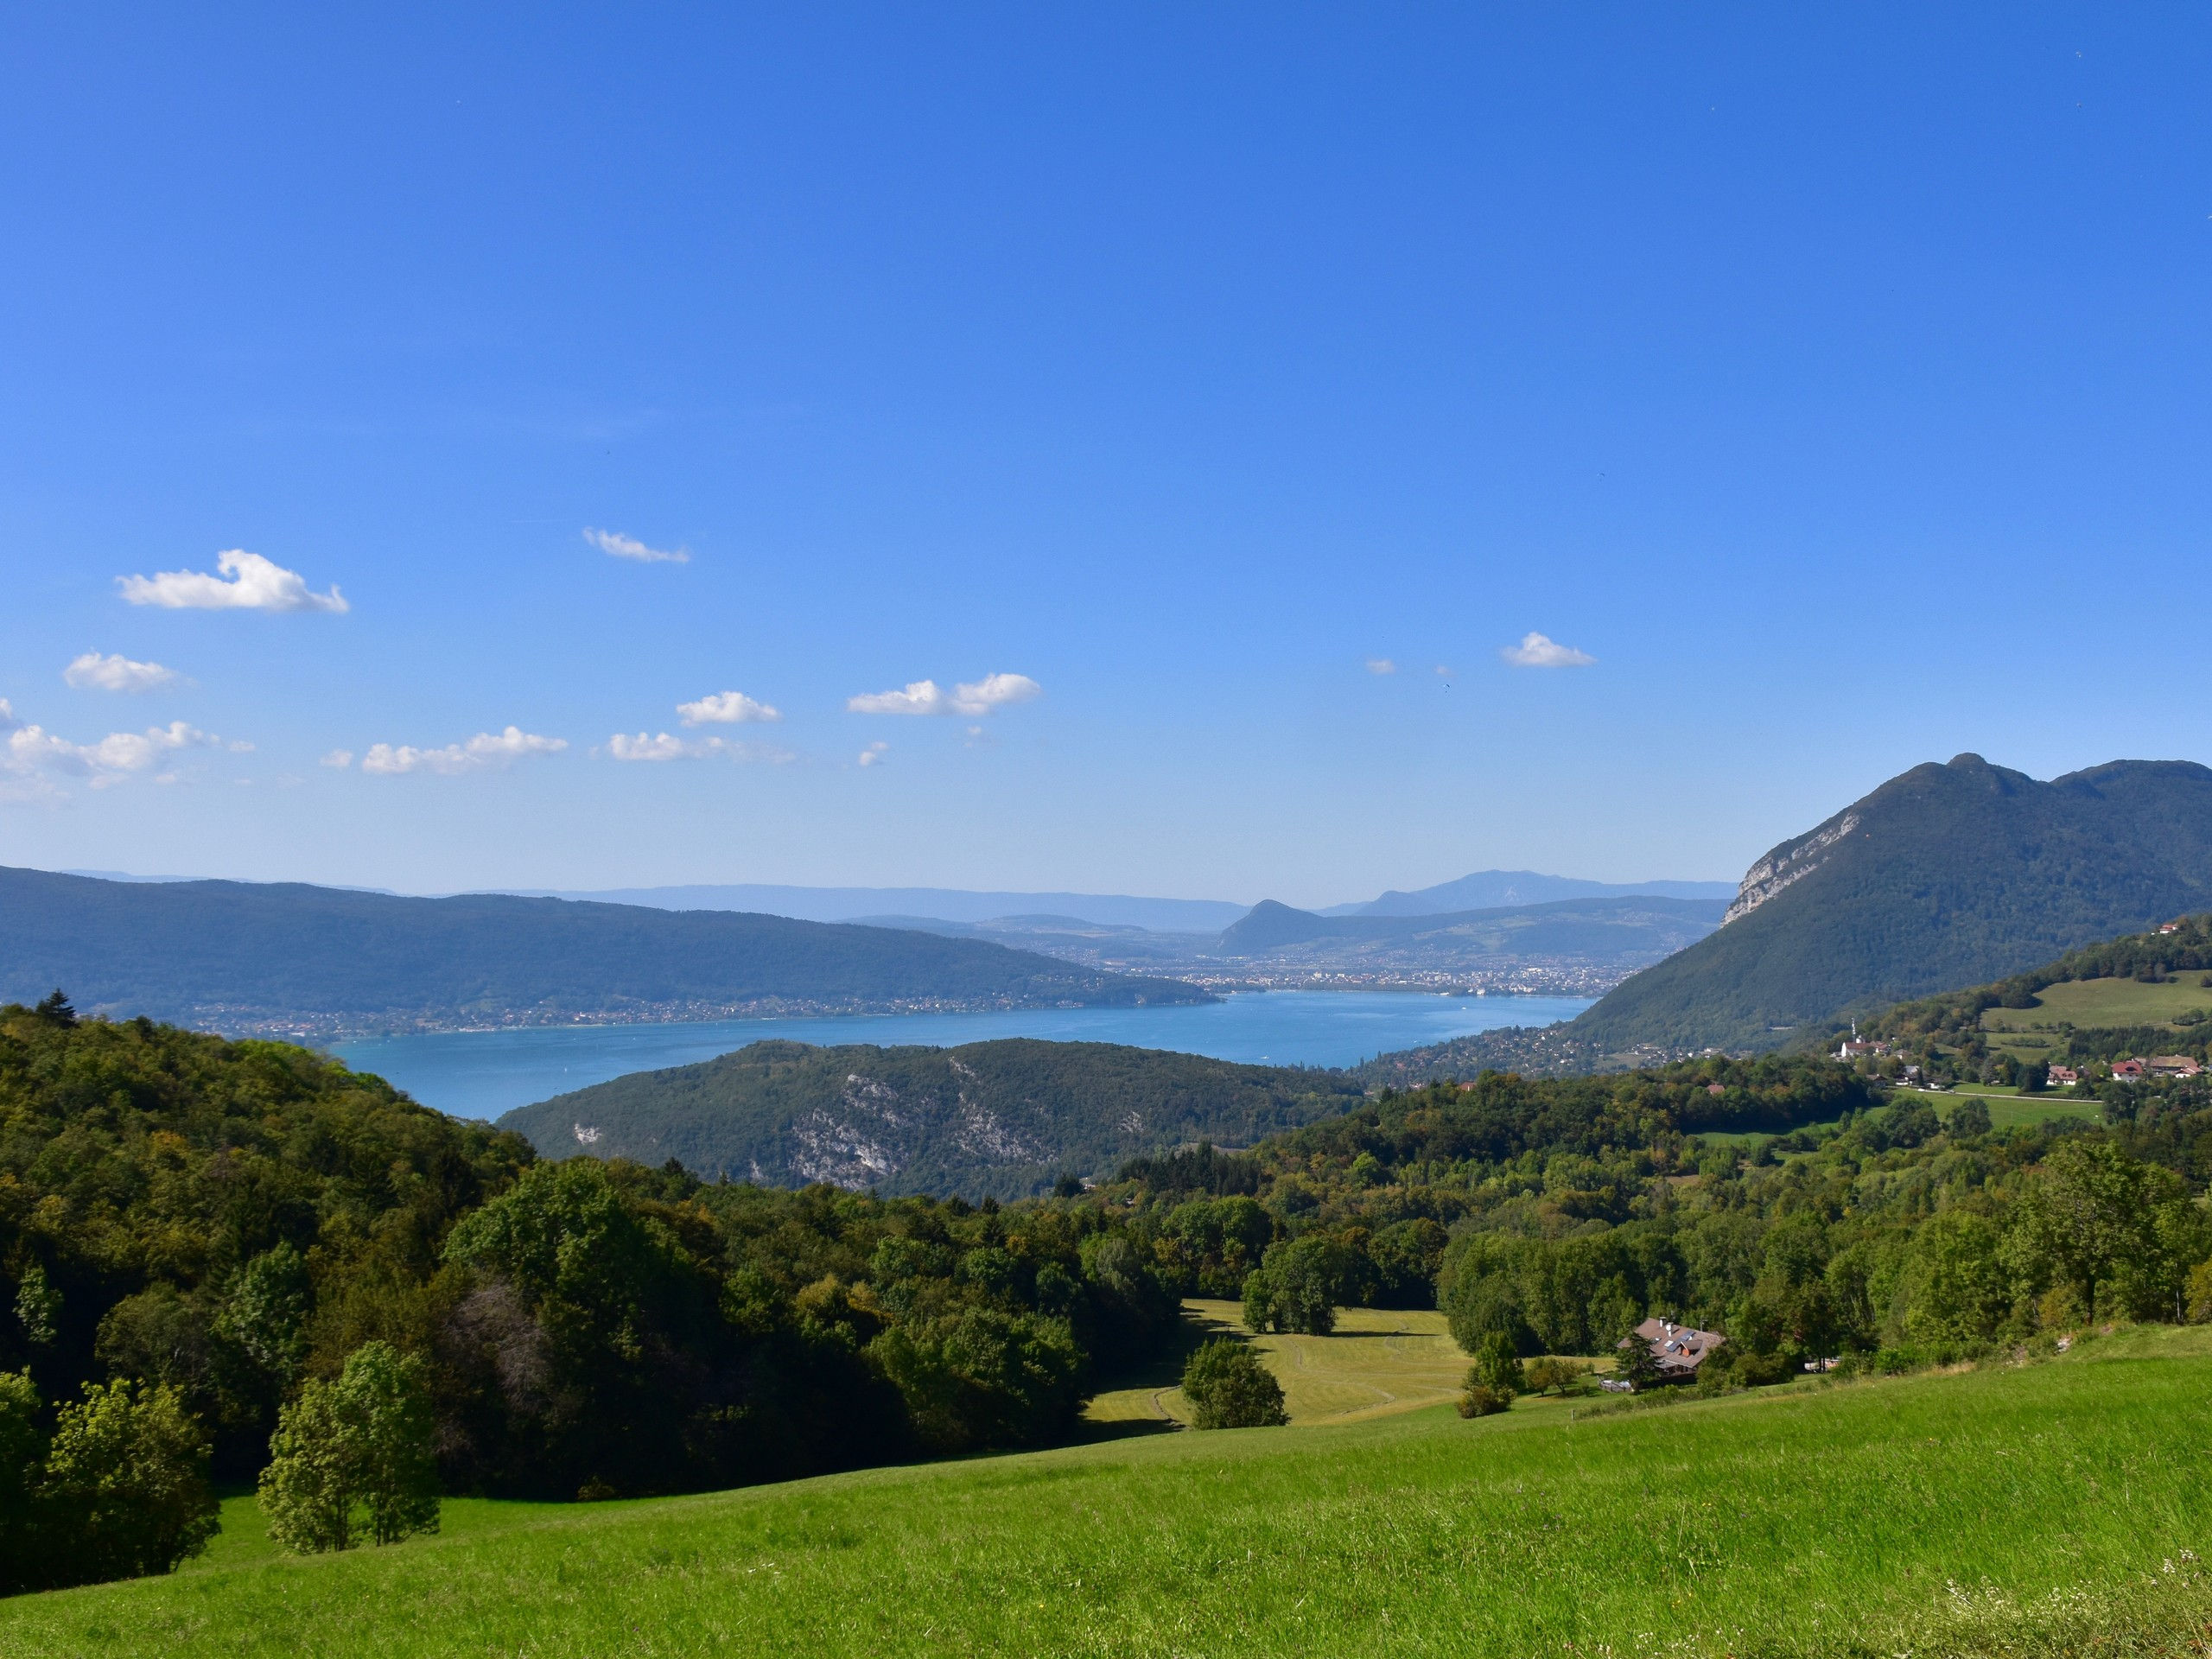 Observing the Lake Annecy views in France